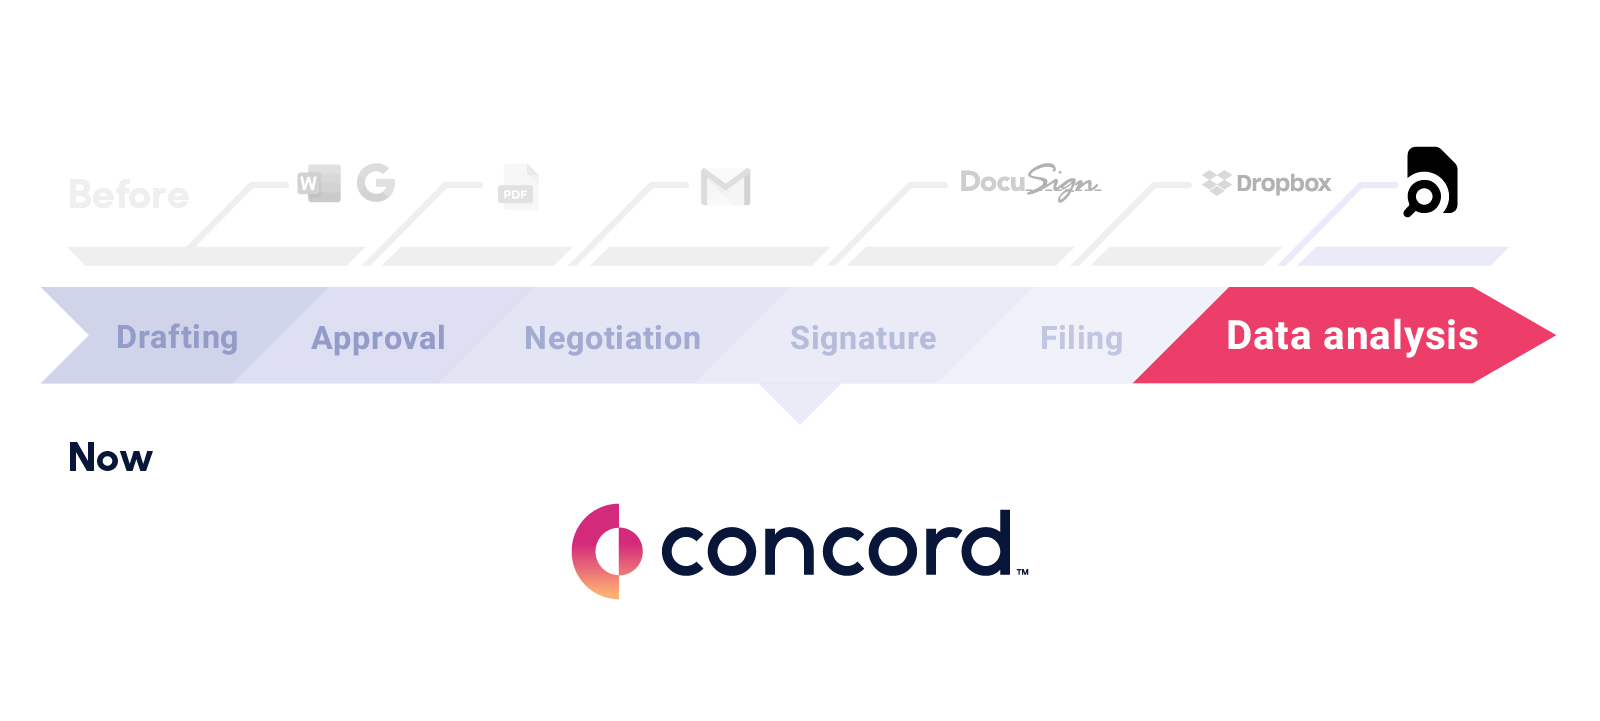 The final stage of the contract lifecycle is tracking contract deadlines and renewal dates.